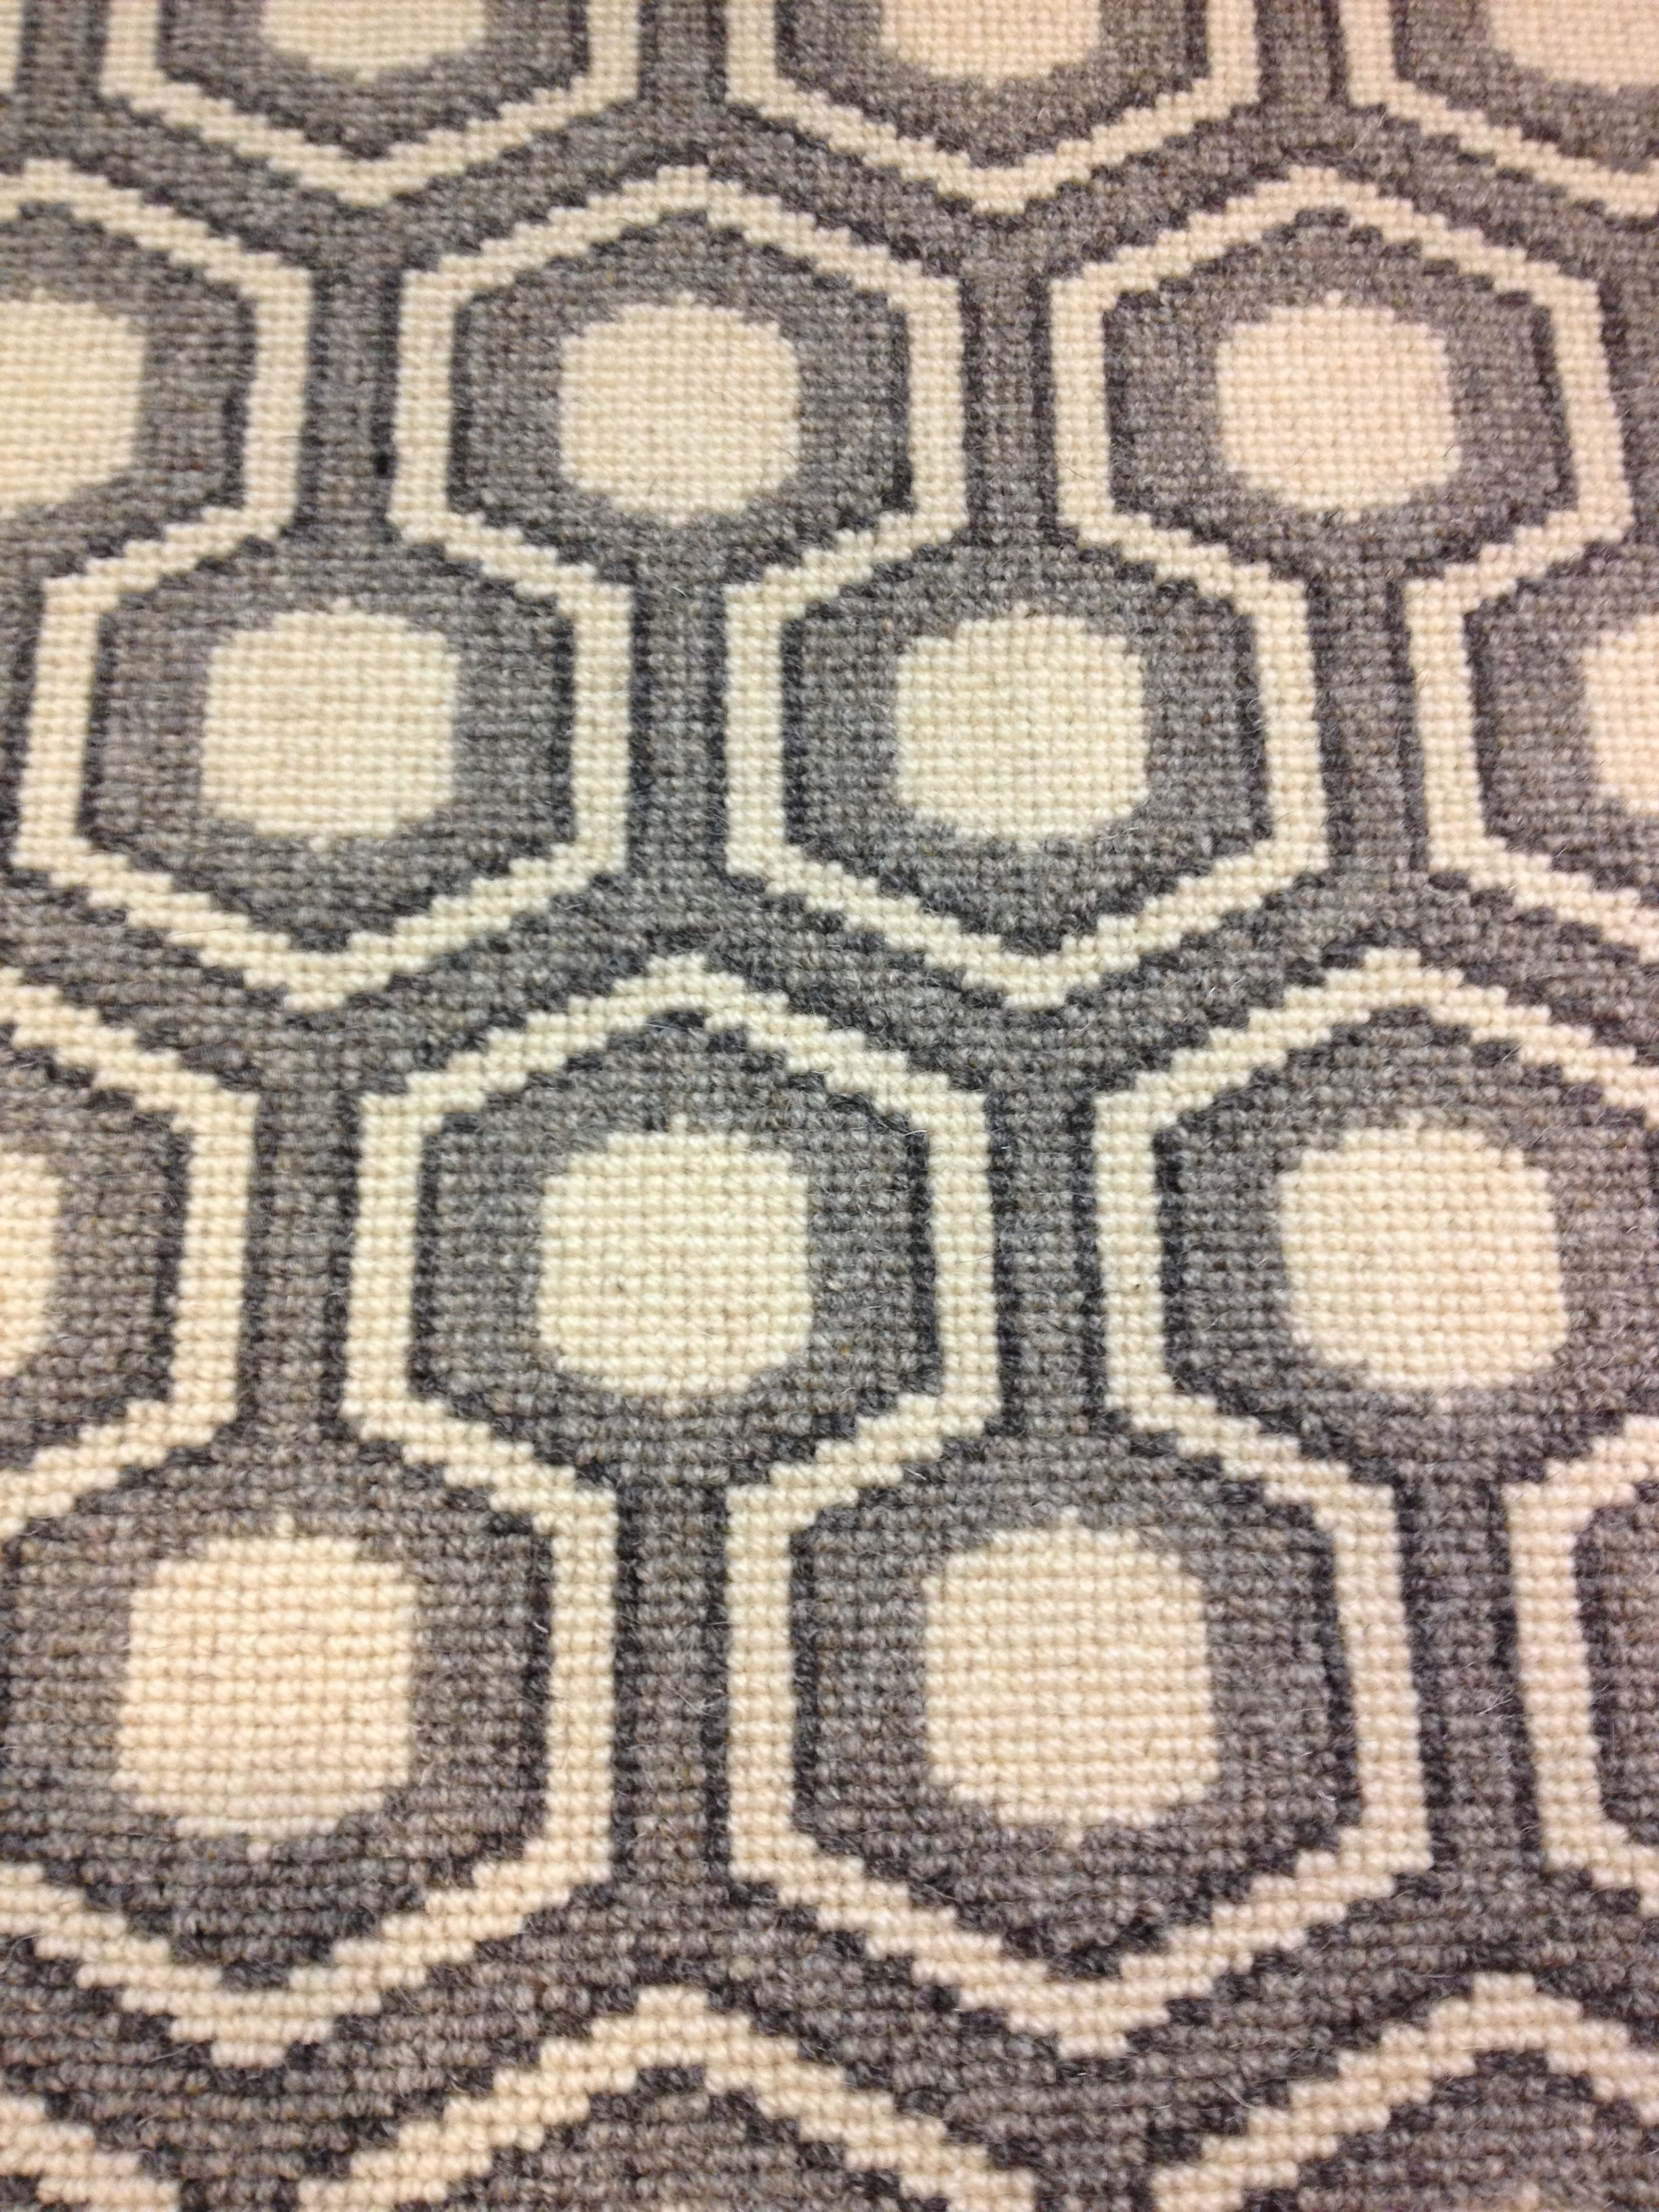 David Hicks Designed This Updated Geometric Patterned Wool Carpet Offered For Wall To Installation Or Fabricated Into An Area Rug Of Any Size